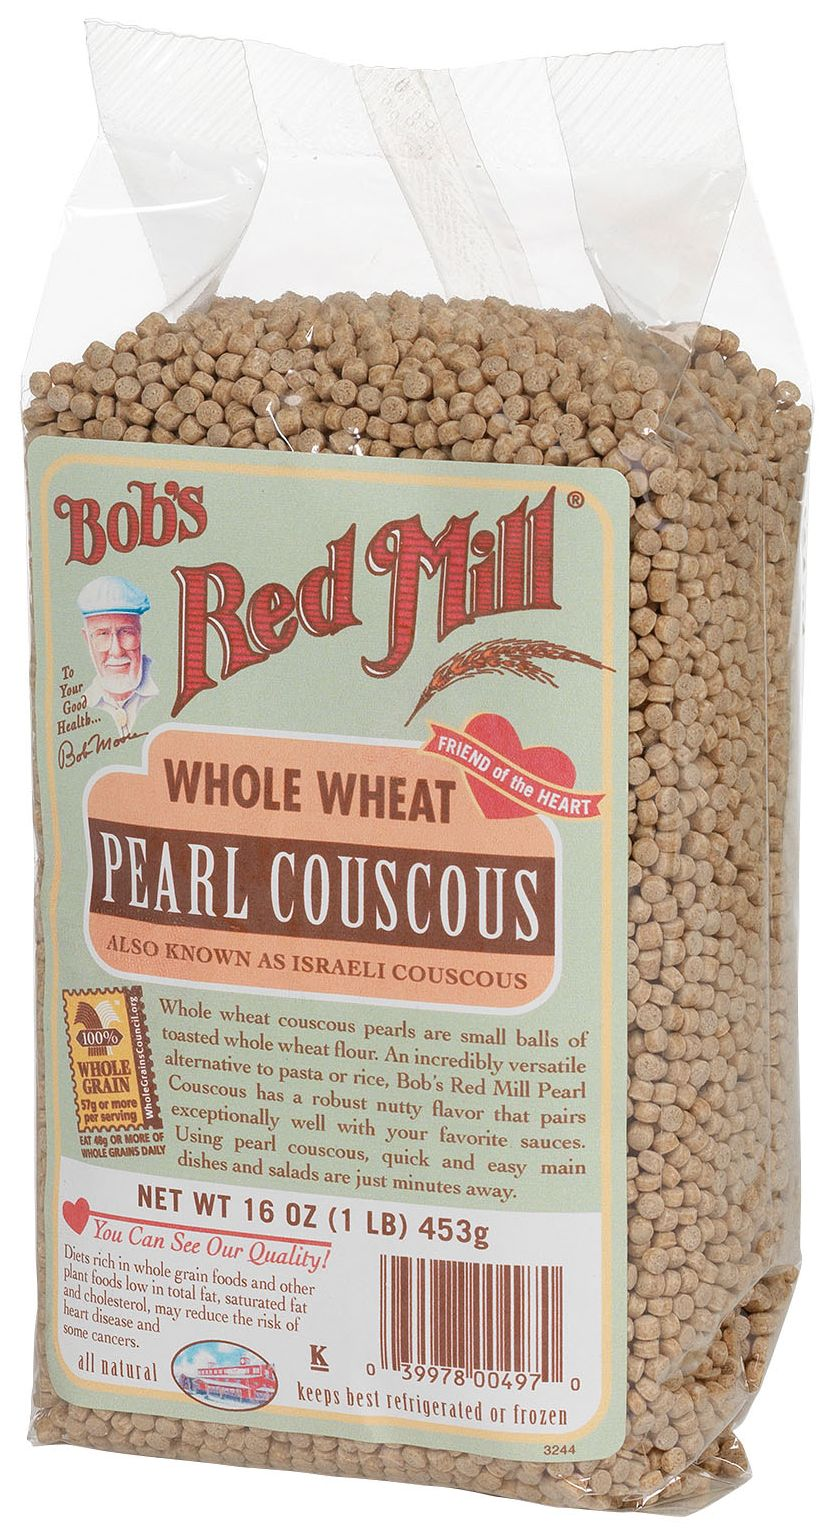 wwpearlcouscous